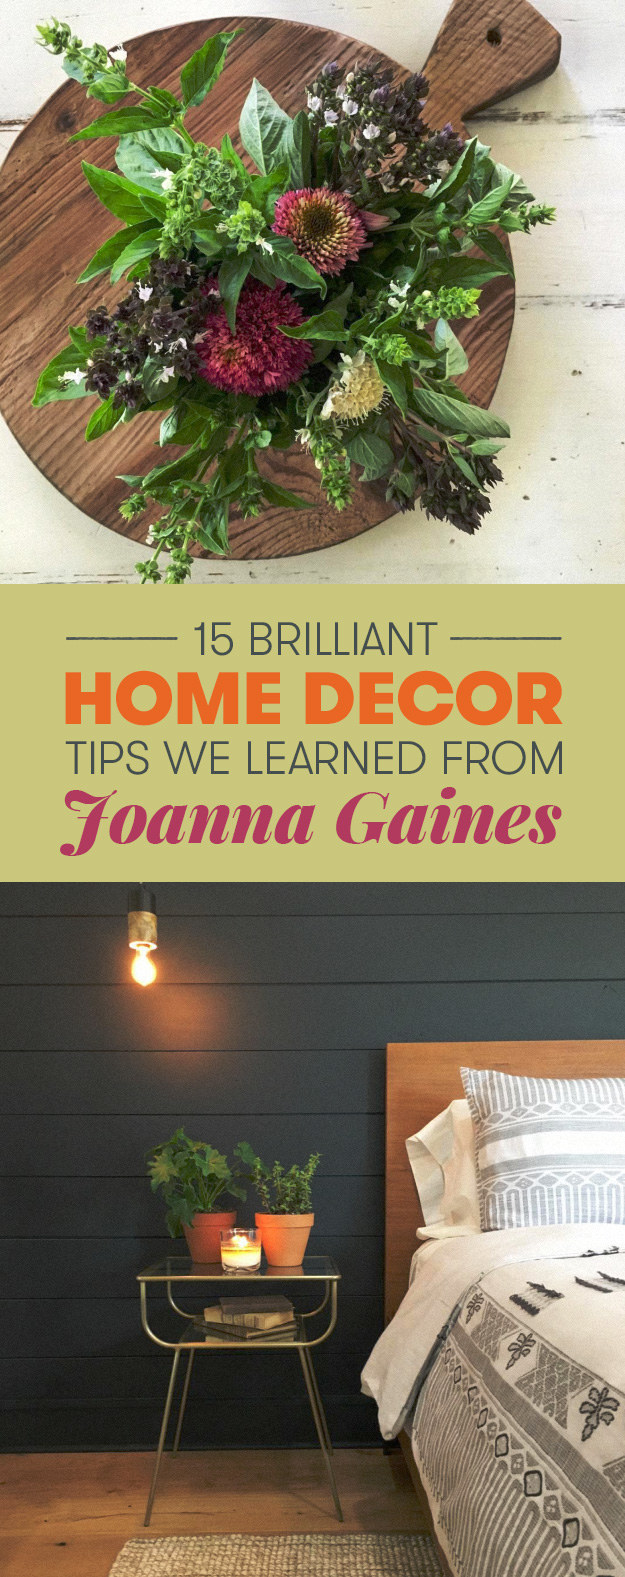 Joanna Gaines Tips For Decorating Living Rooms: 15 Home Decor Tips From Joanna Gaines That You'll Want To